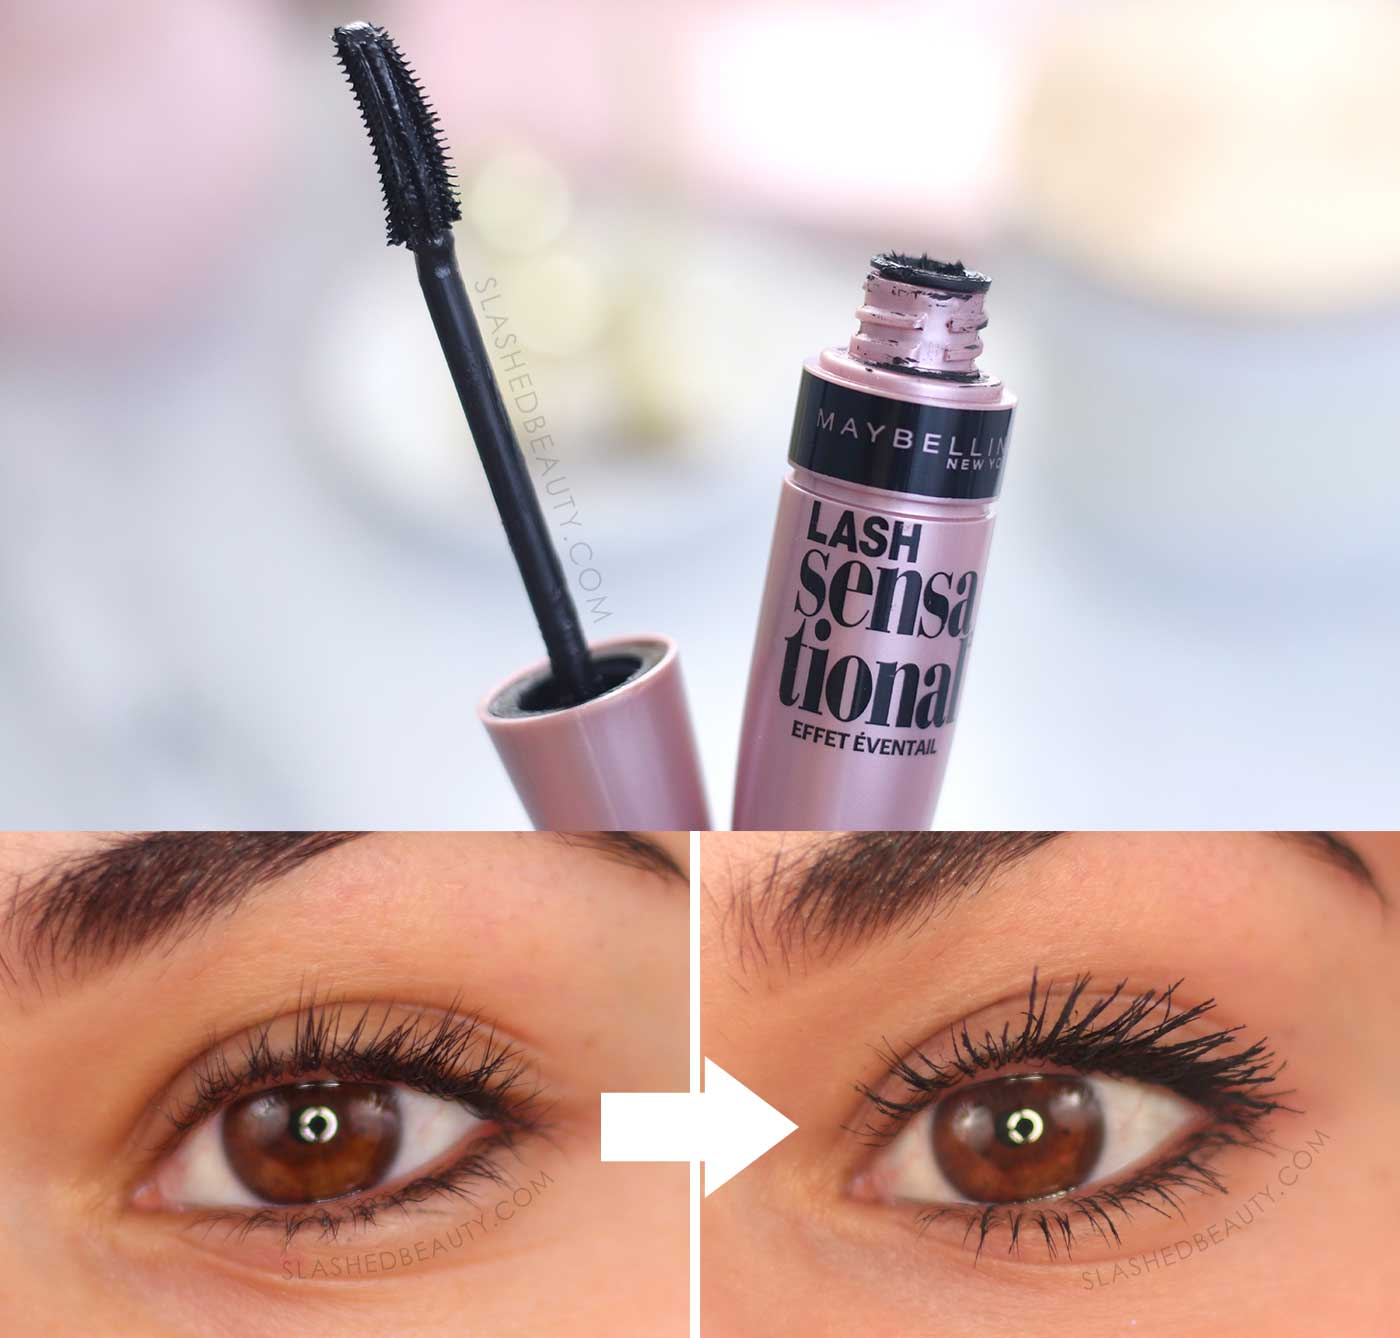 Maybelline Lash Sensational Mascara Before & After Review | 5 Best Drugstore Mascaras in 2020 | Slashed Beauty